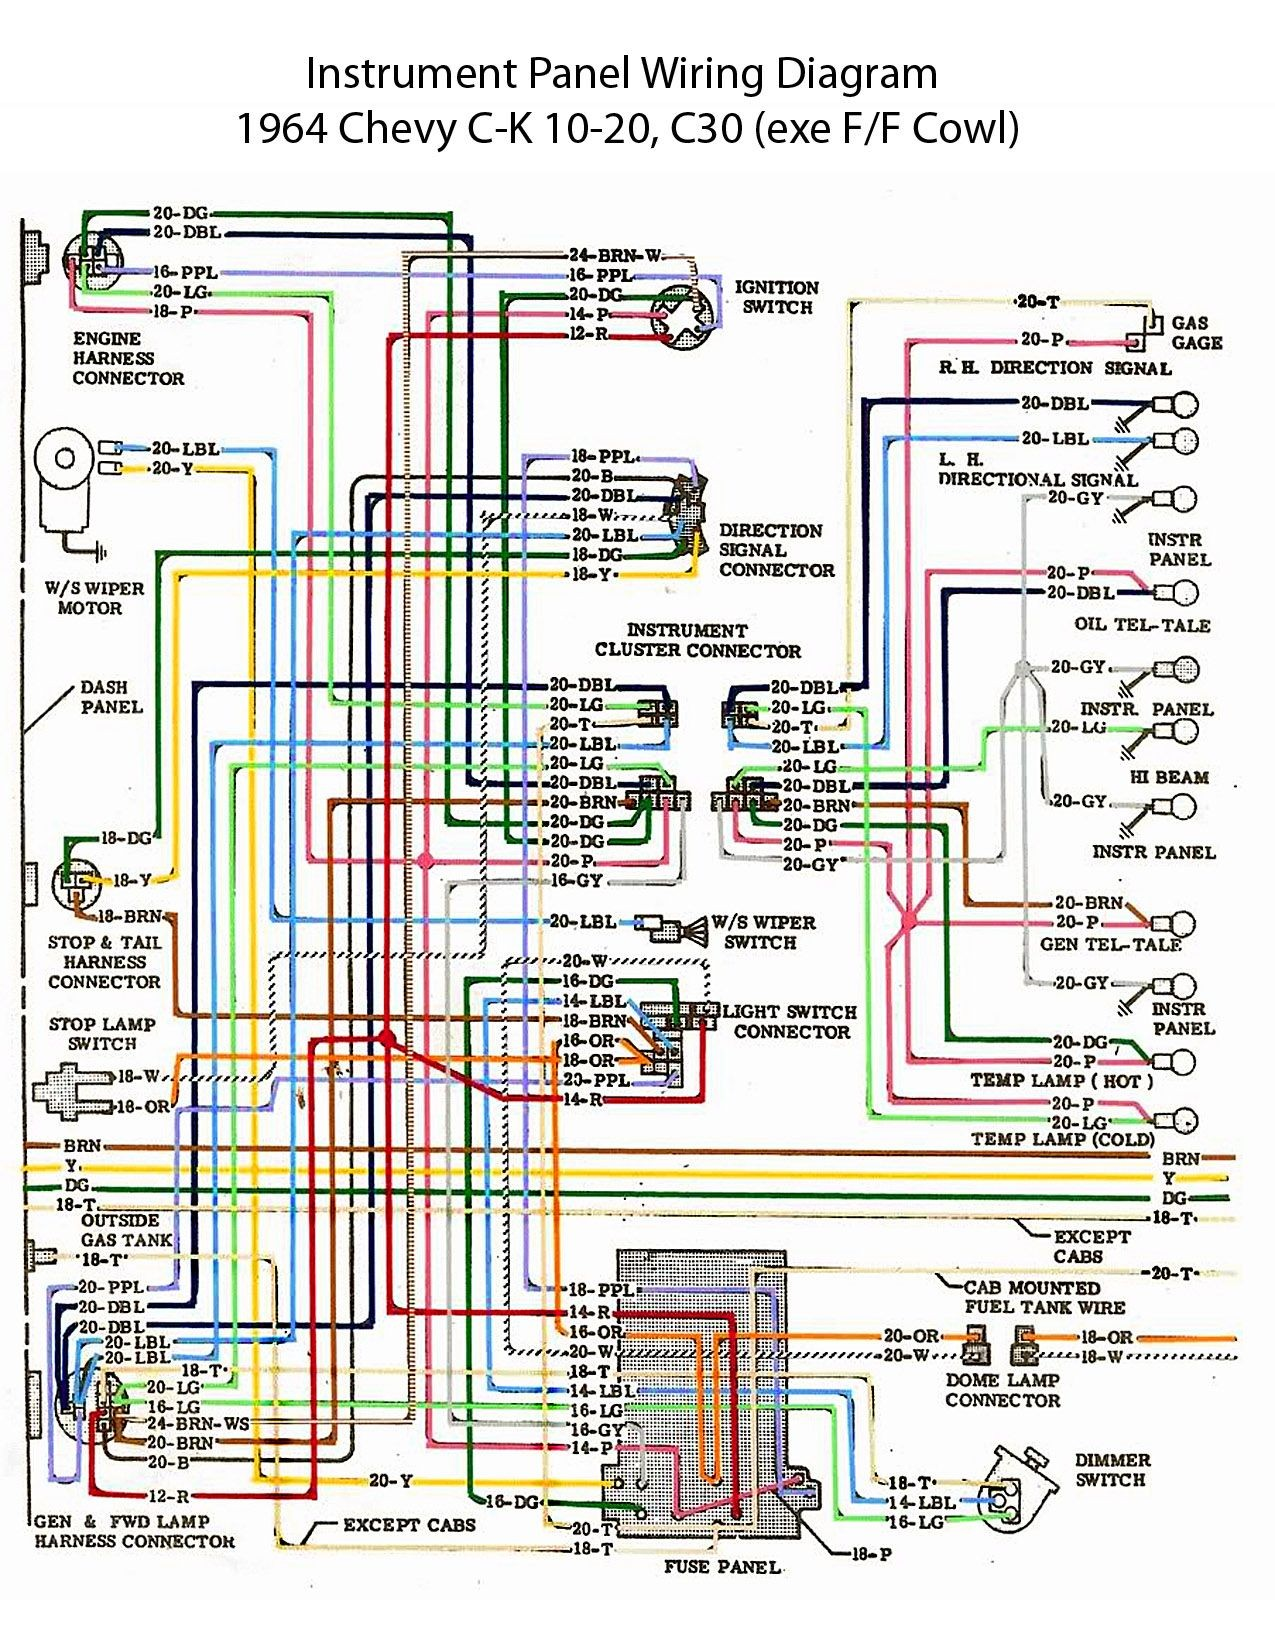 Chevy Truck Parts Diagram Electric Wiring Diagram Instrument Panel Of Chevy Truck Parts Diagram